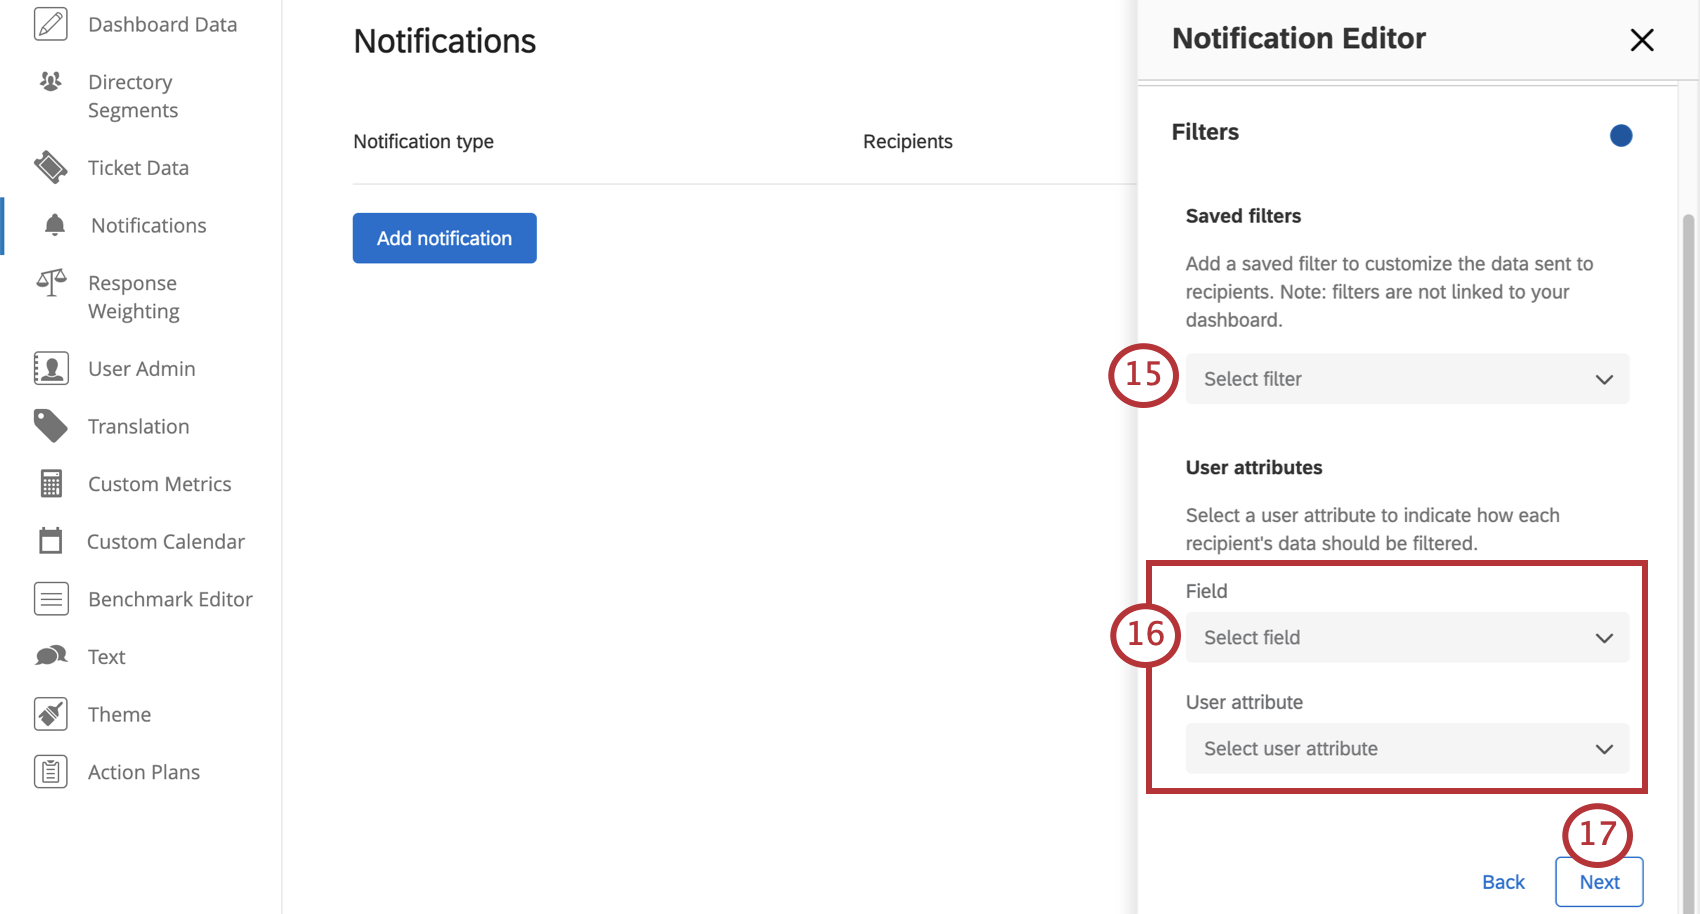 Field for selecting from a list of filters